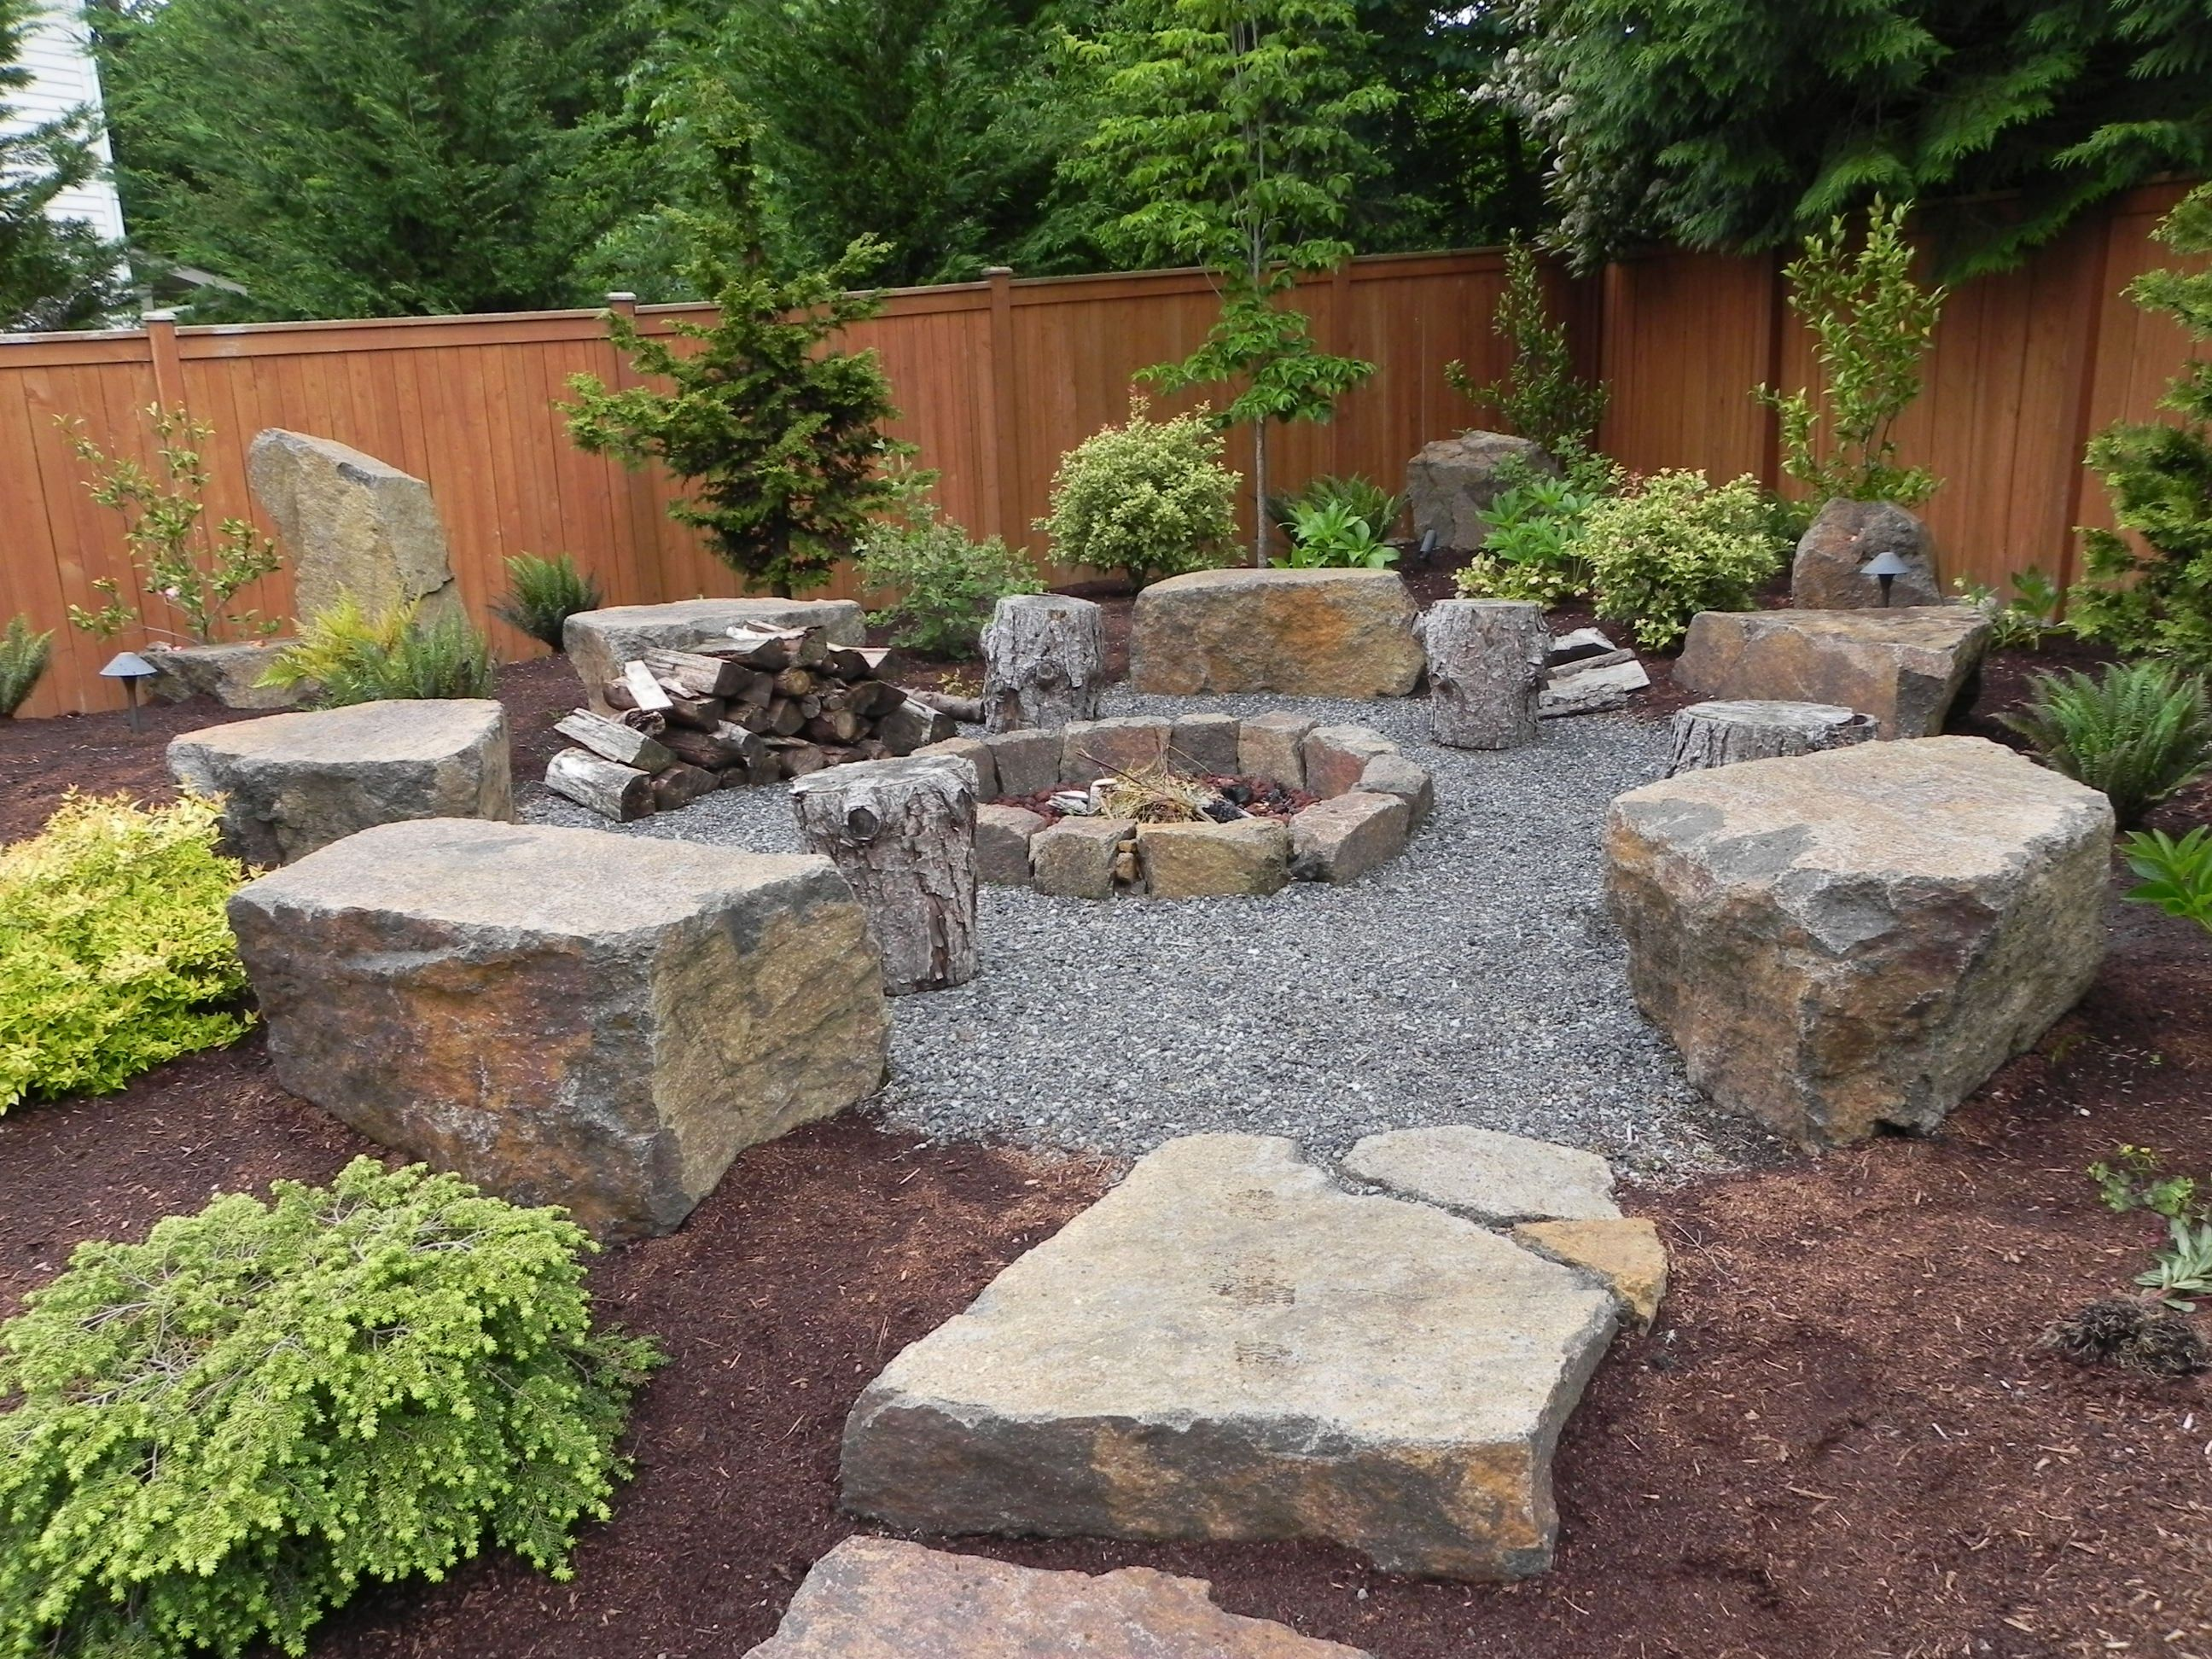 0d03ee1457e494649301e86b066c0325 Top Result 50 Awesome Easy to Build Fire Pit Pic 2018 Hiw6